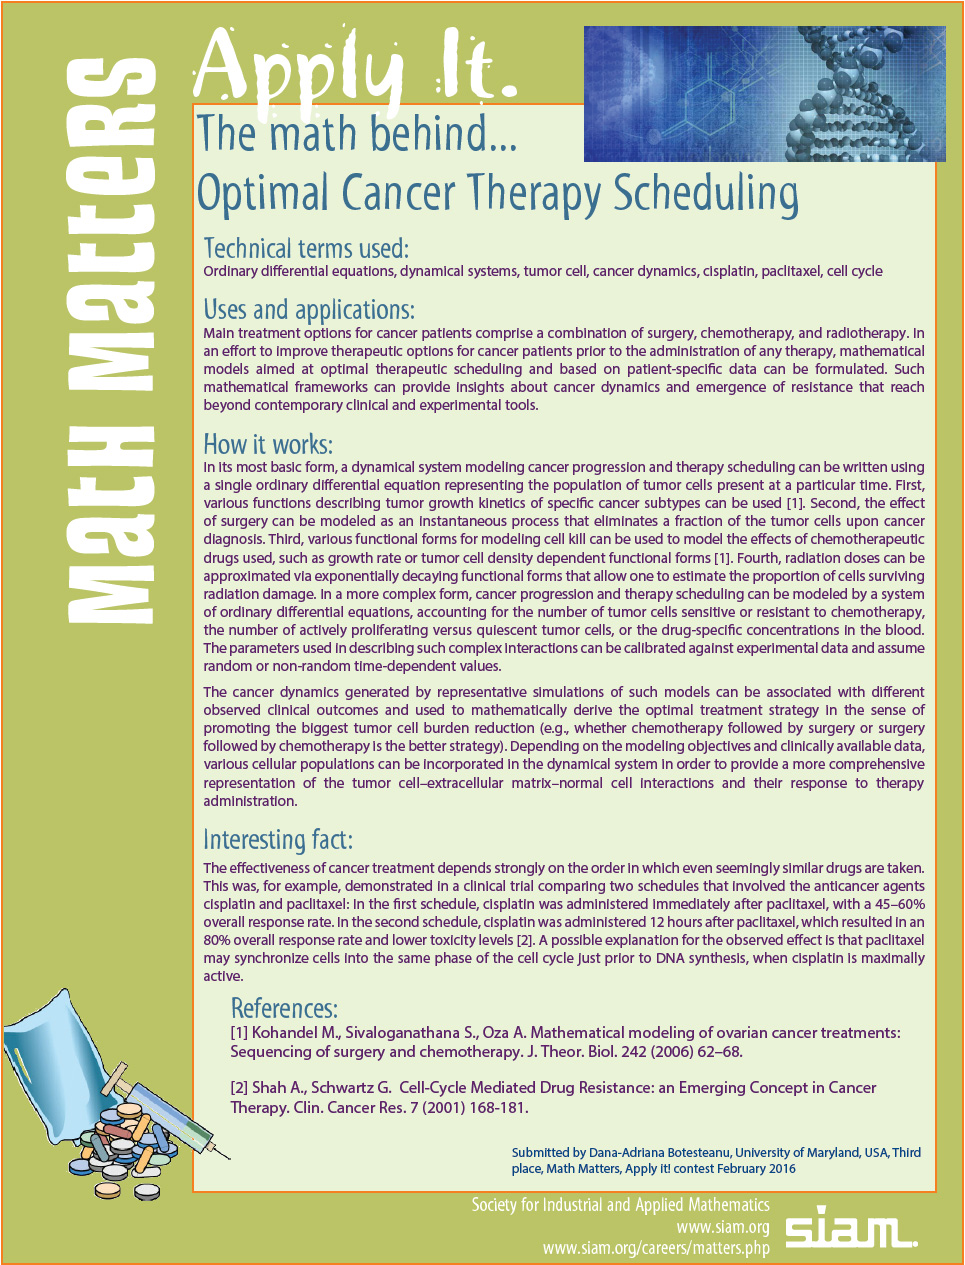 math behind Optimal Cancer Therapy Scheduling